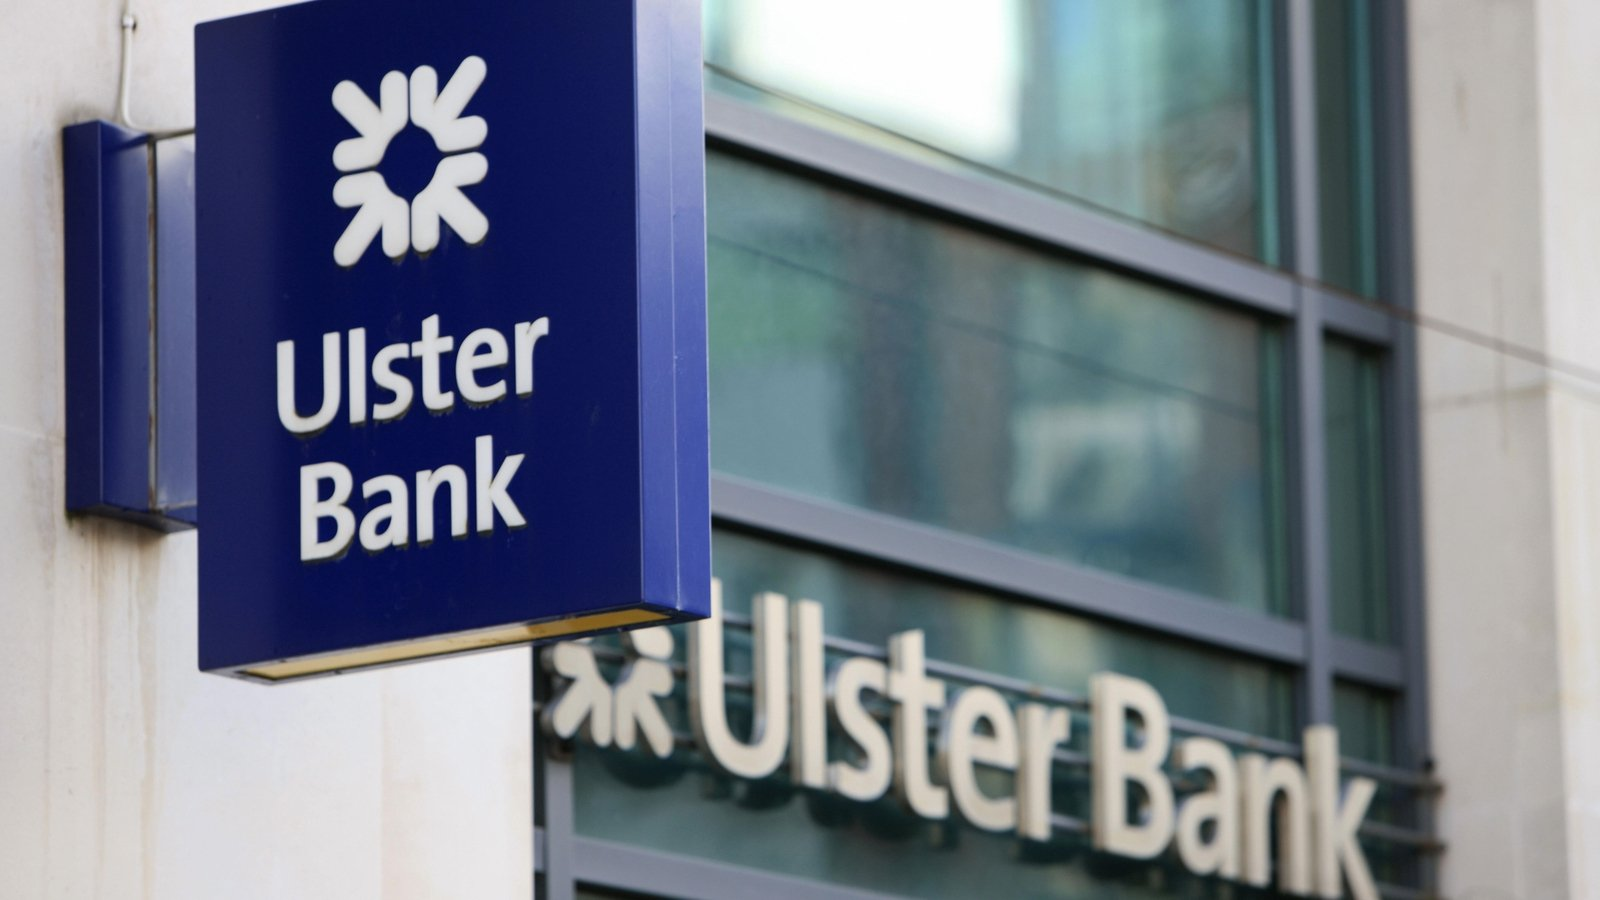 Ulster Bank fined €3.5m over 2012 IT failures